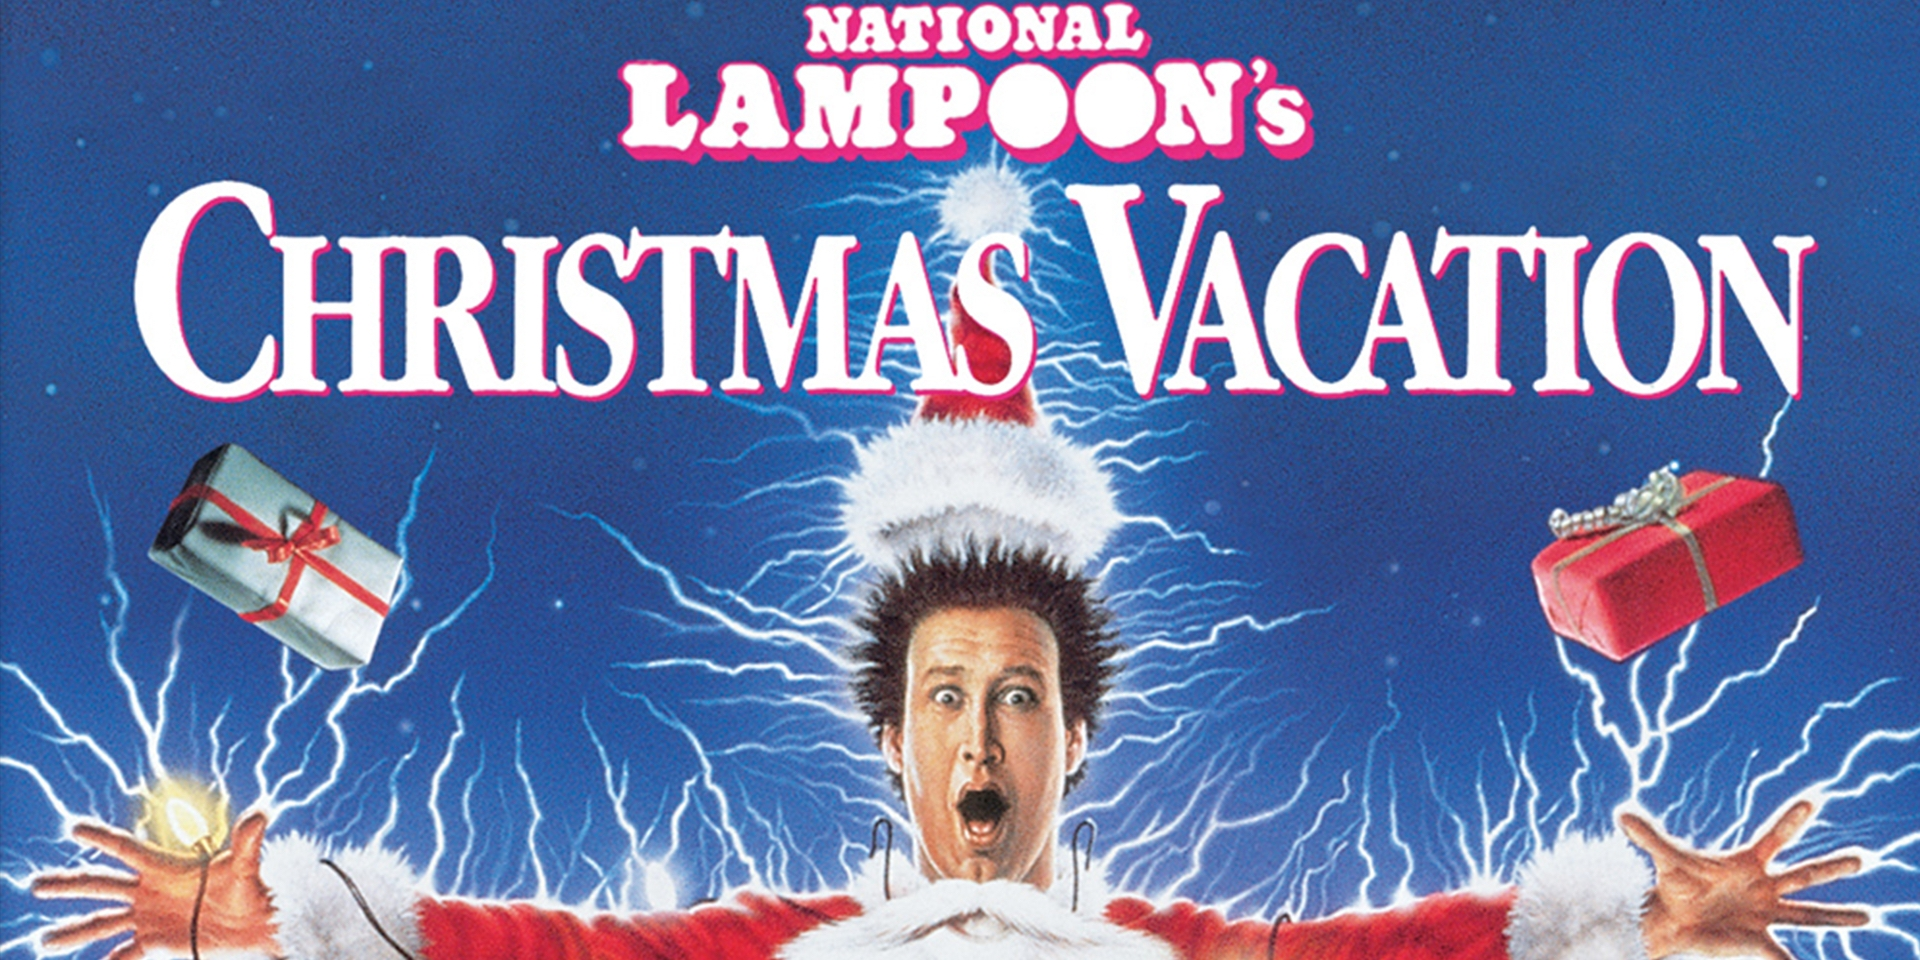 Randy Quaid Christmas Vacation.National Lampoon S Christmas Vacation Sold Out Historic